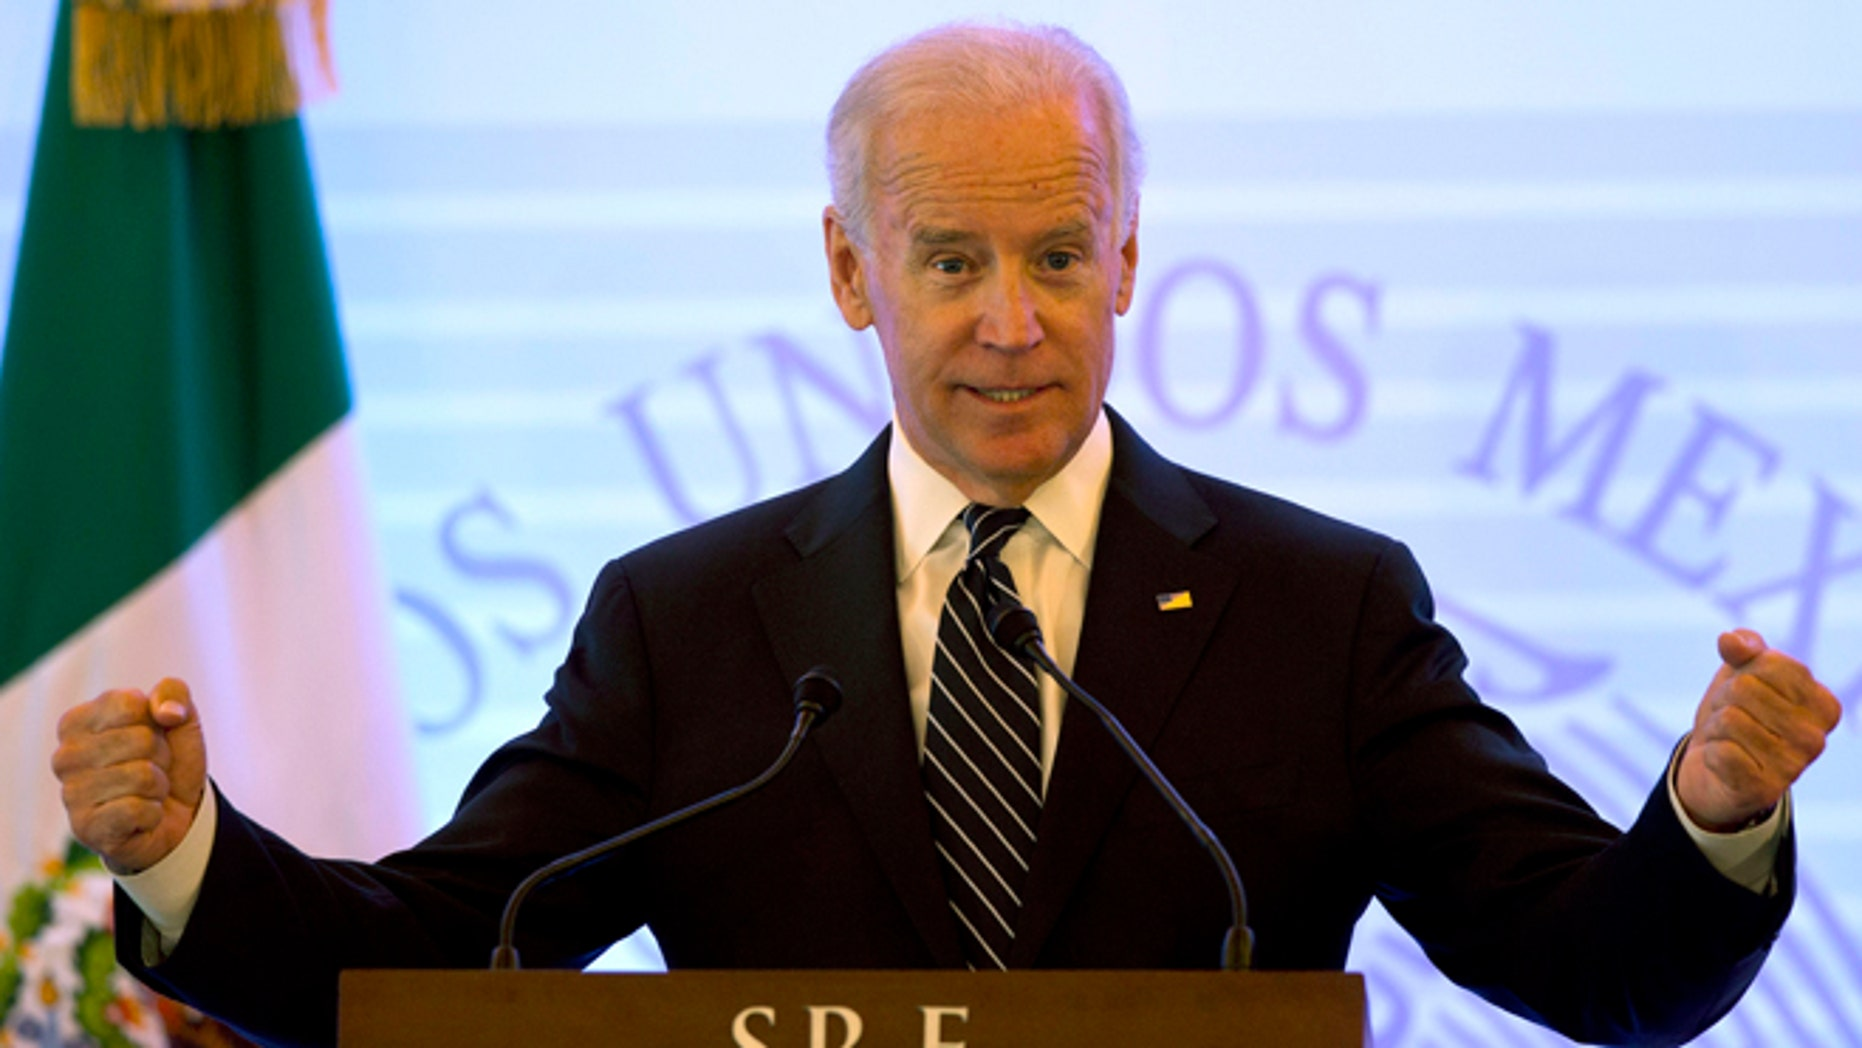 Vice President Biden in Mexico City, on Sept. 20, 2013.